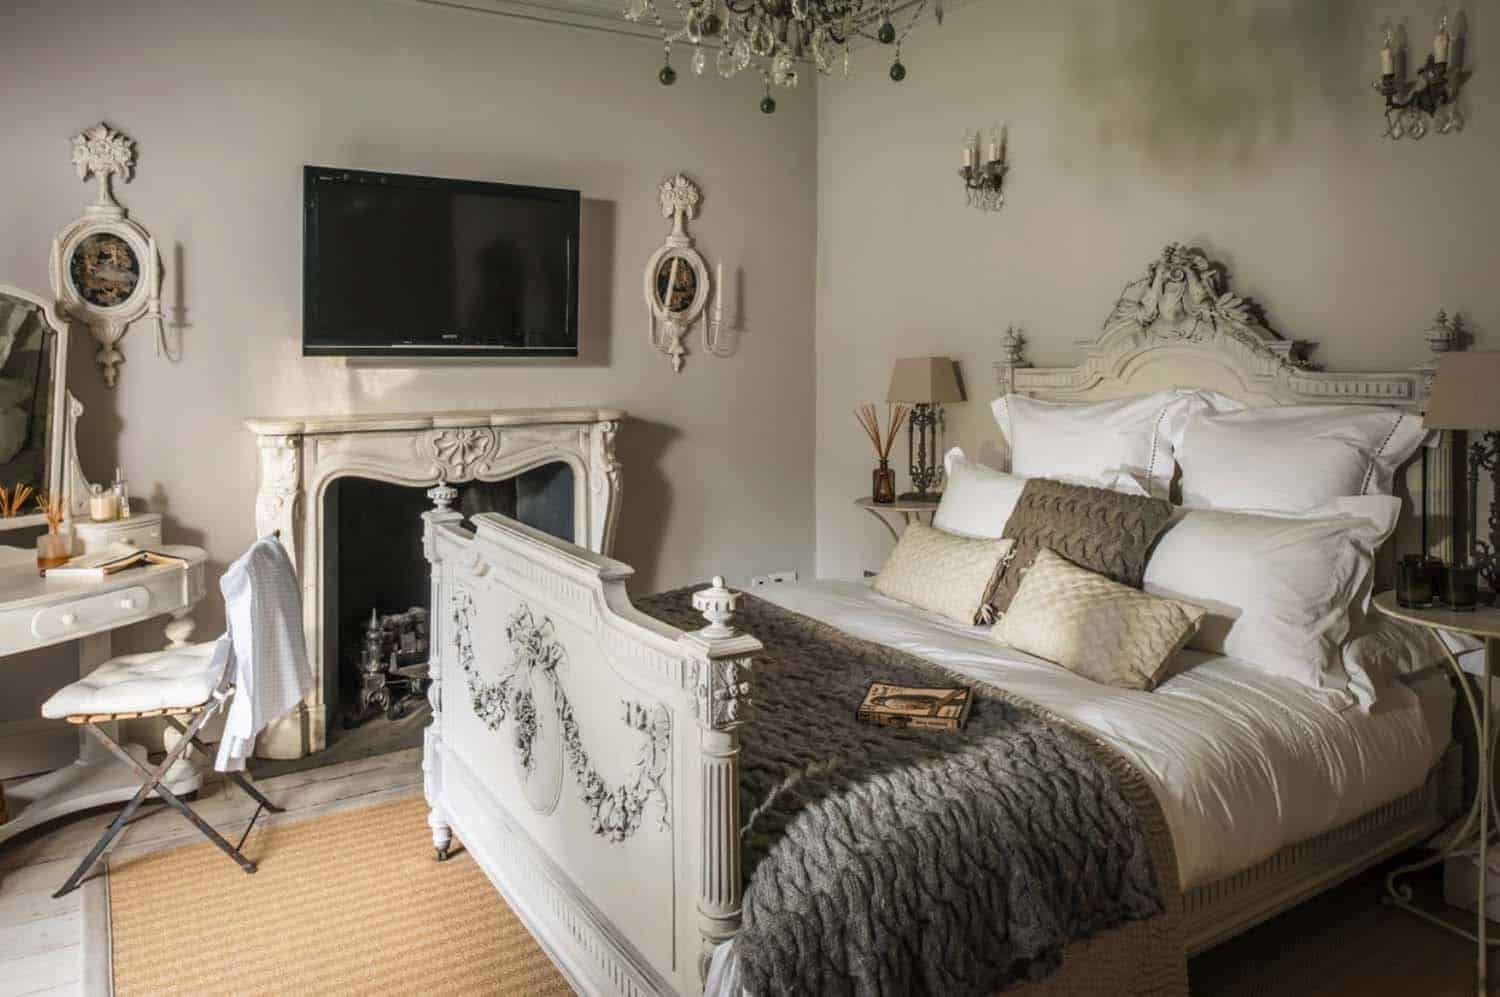 luxury-private-homestay-winterfell-cumbria-27-1-kindesign